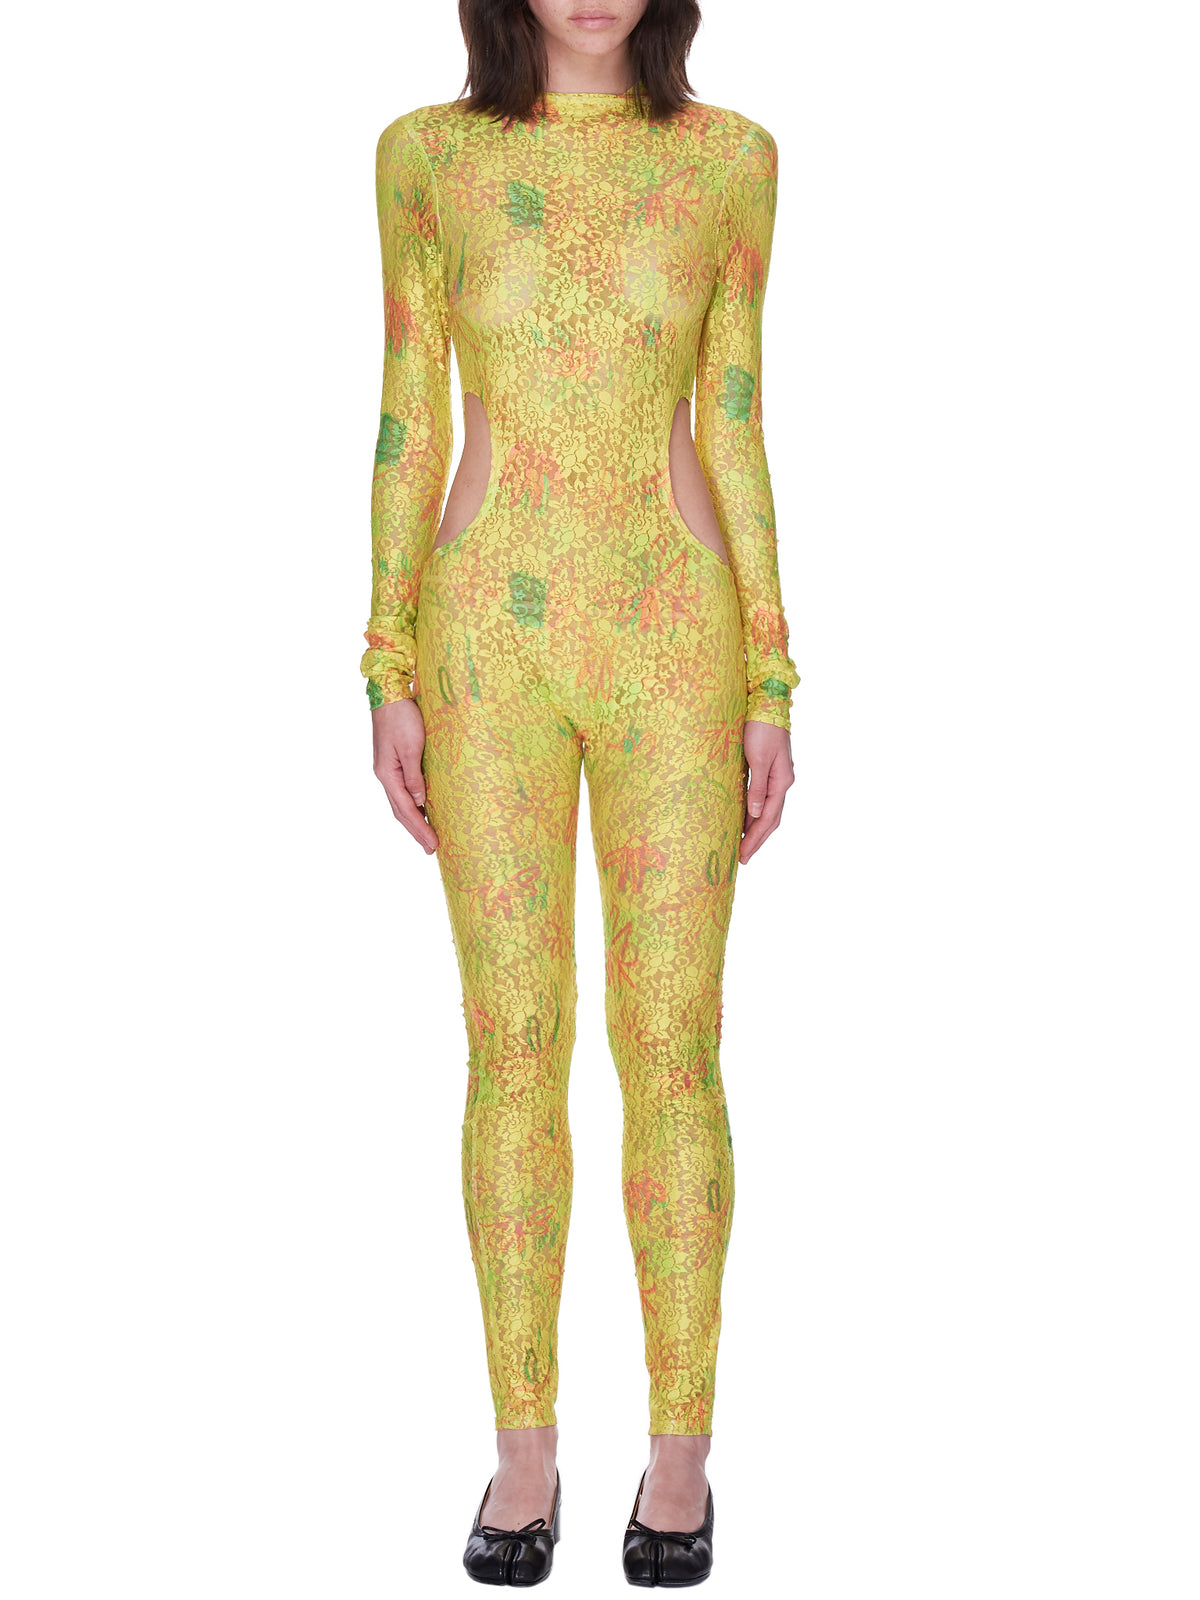 Circle Cardio Bodysuit (XX2113-YELLOW-FLOWER-DRIP)